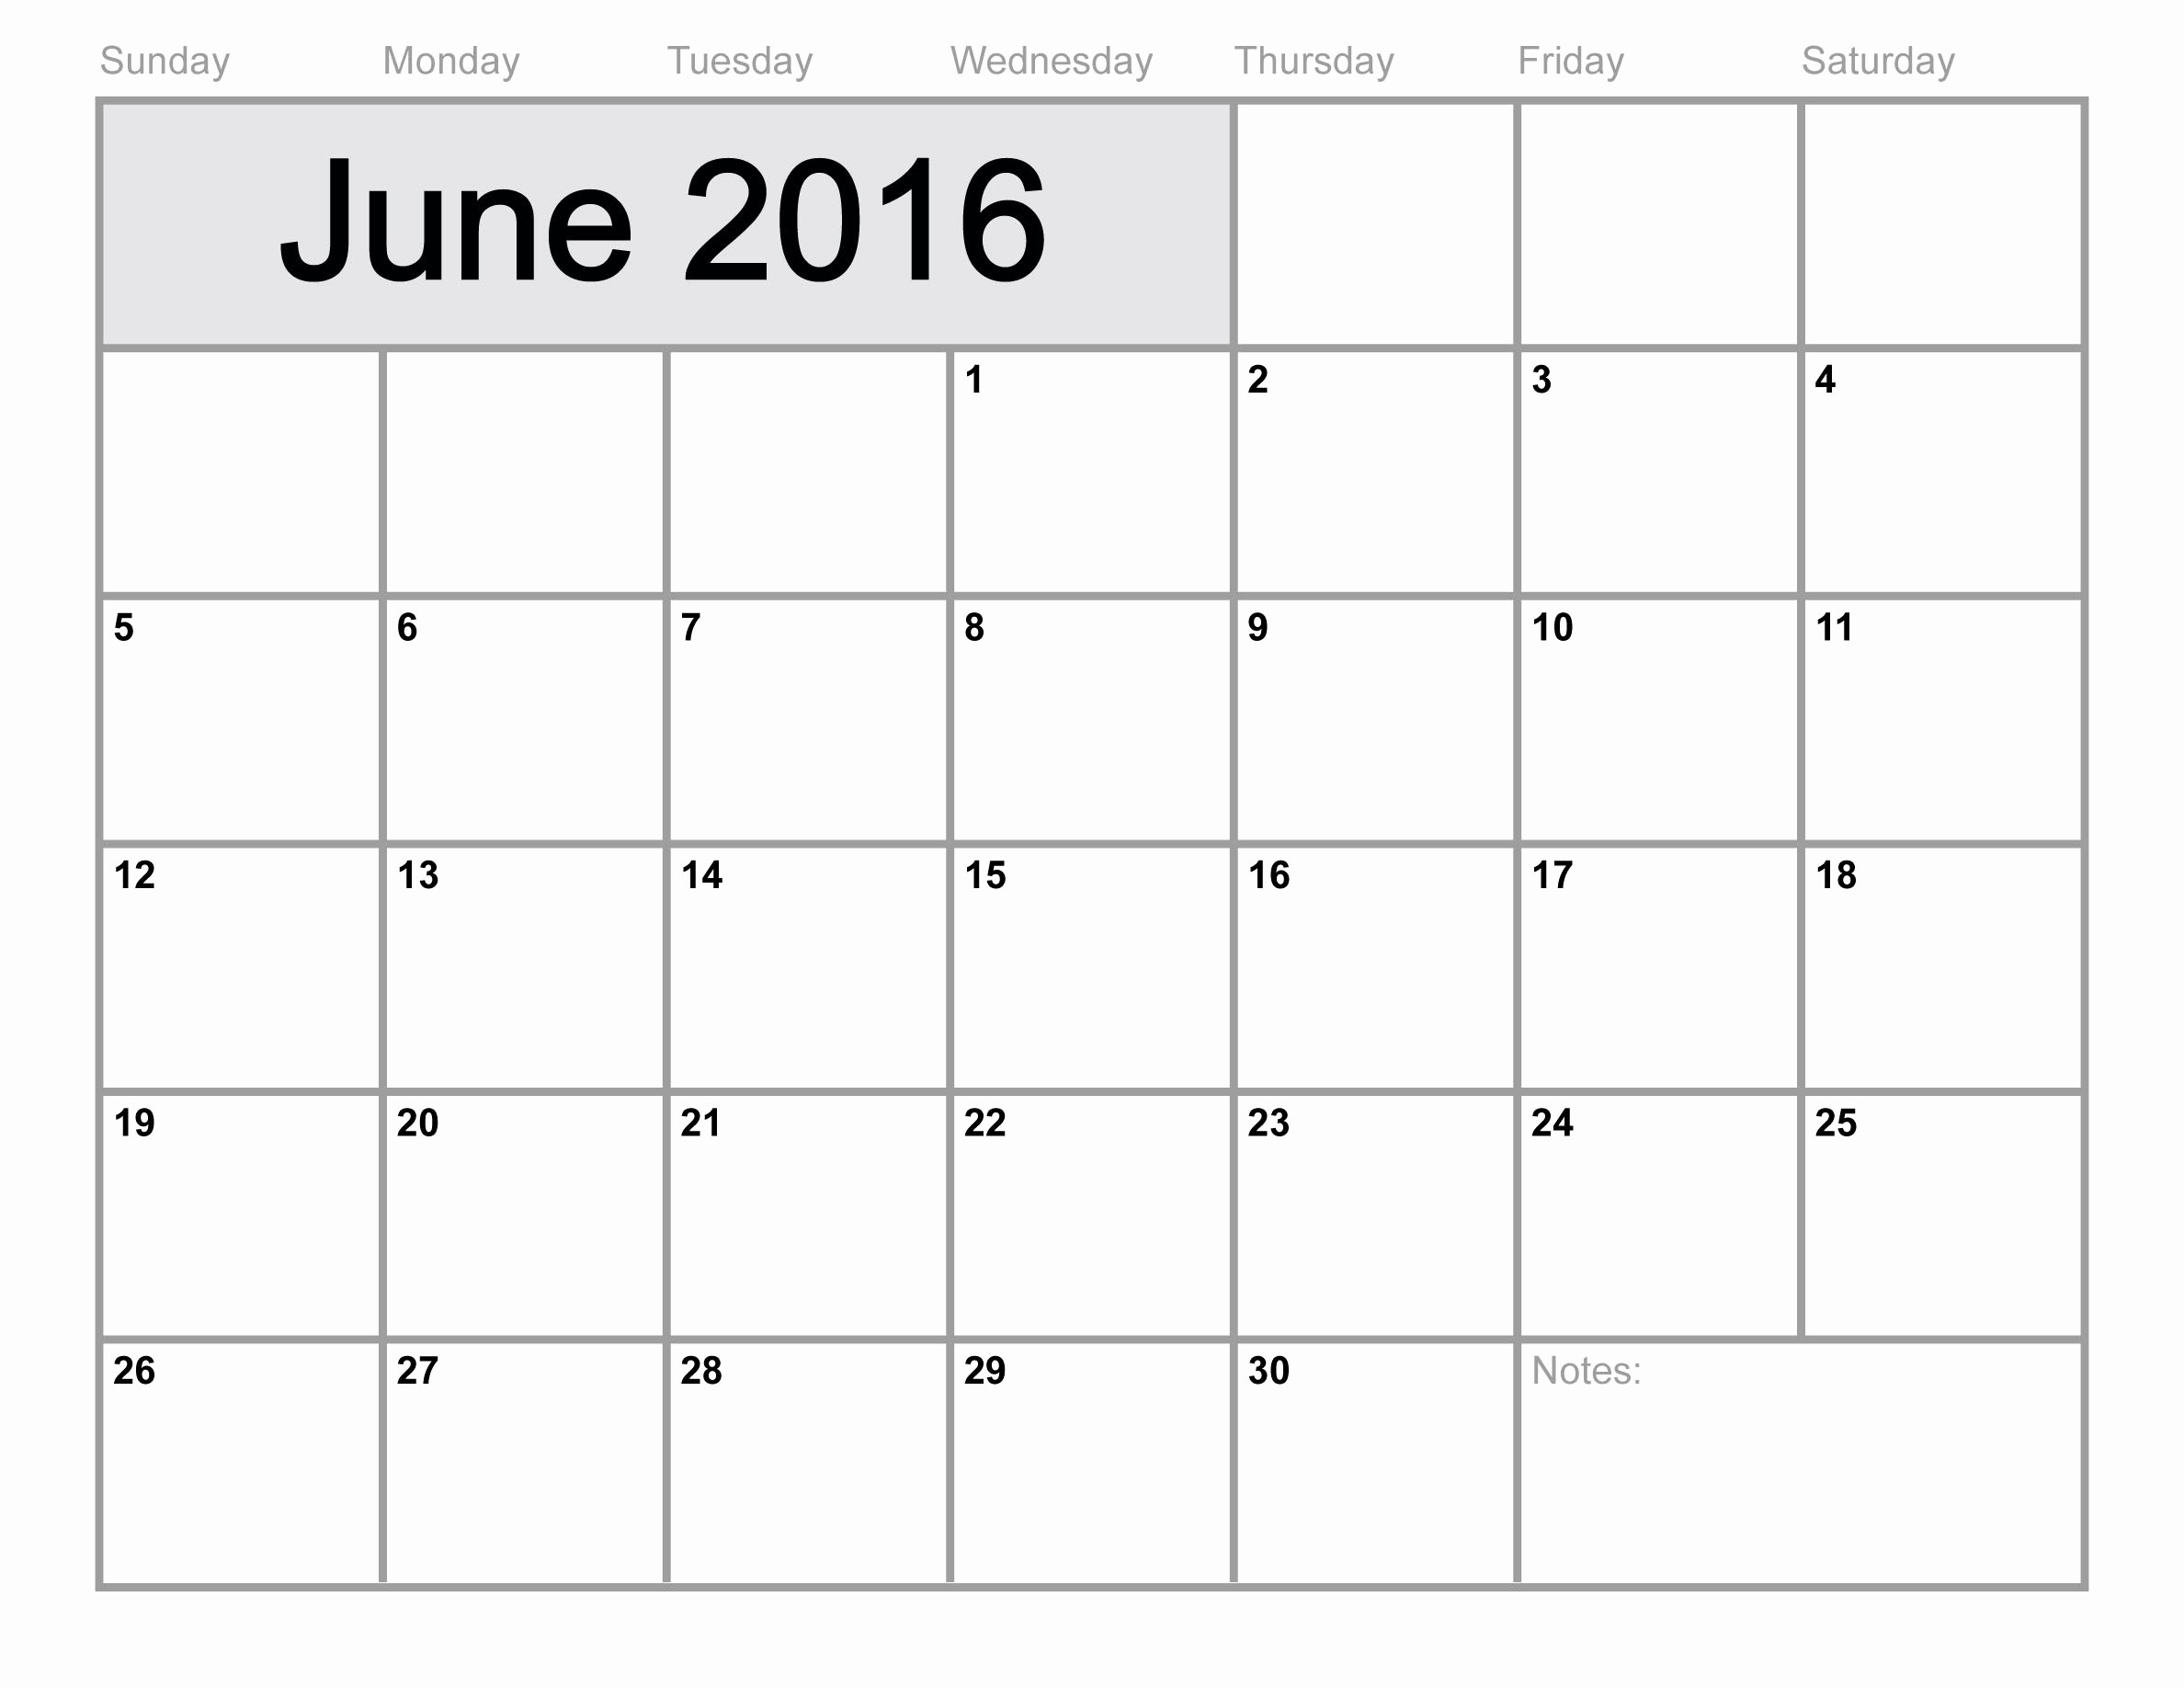 Free Printable Calendar 2016 Templates Beautiful June 2016 Printable Calendar Blank Templates